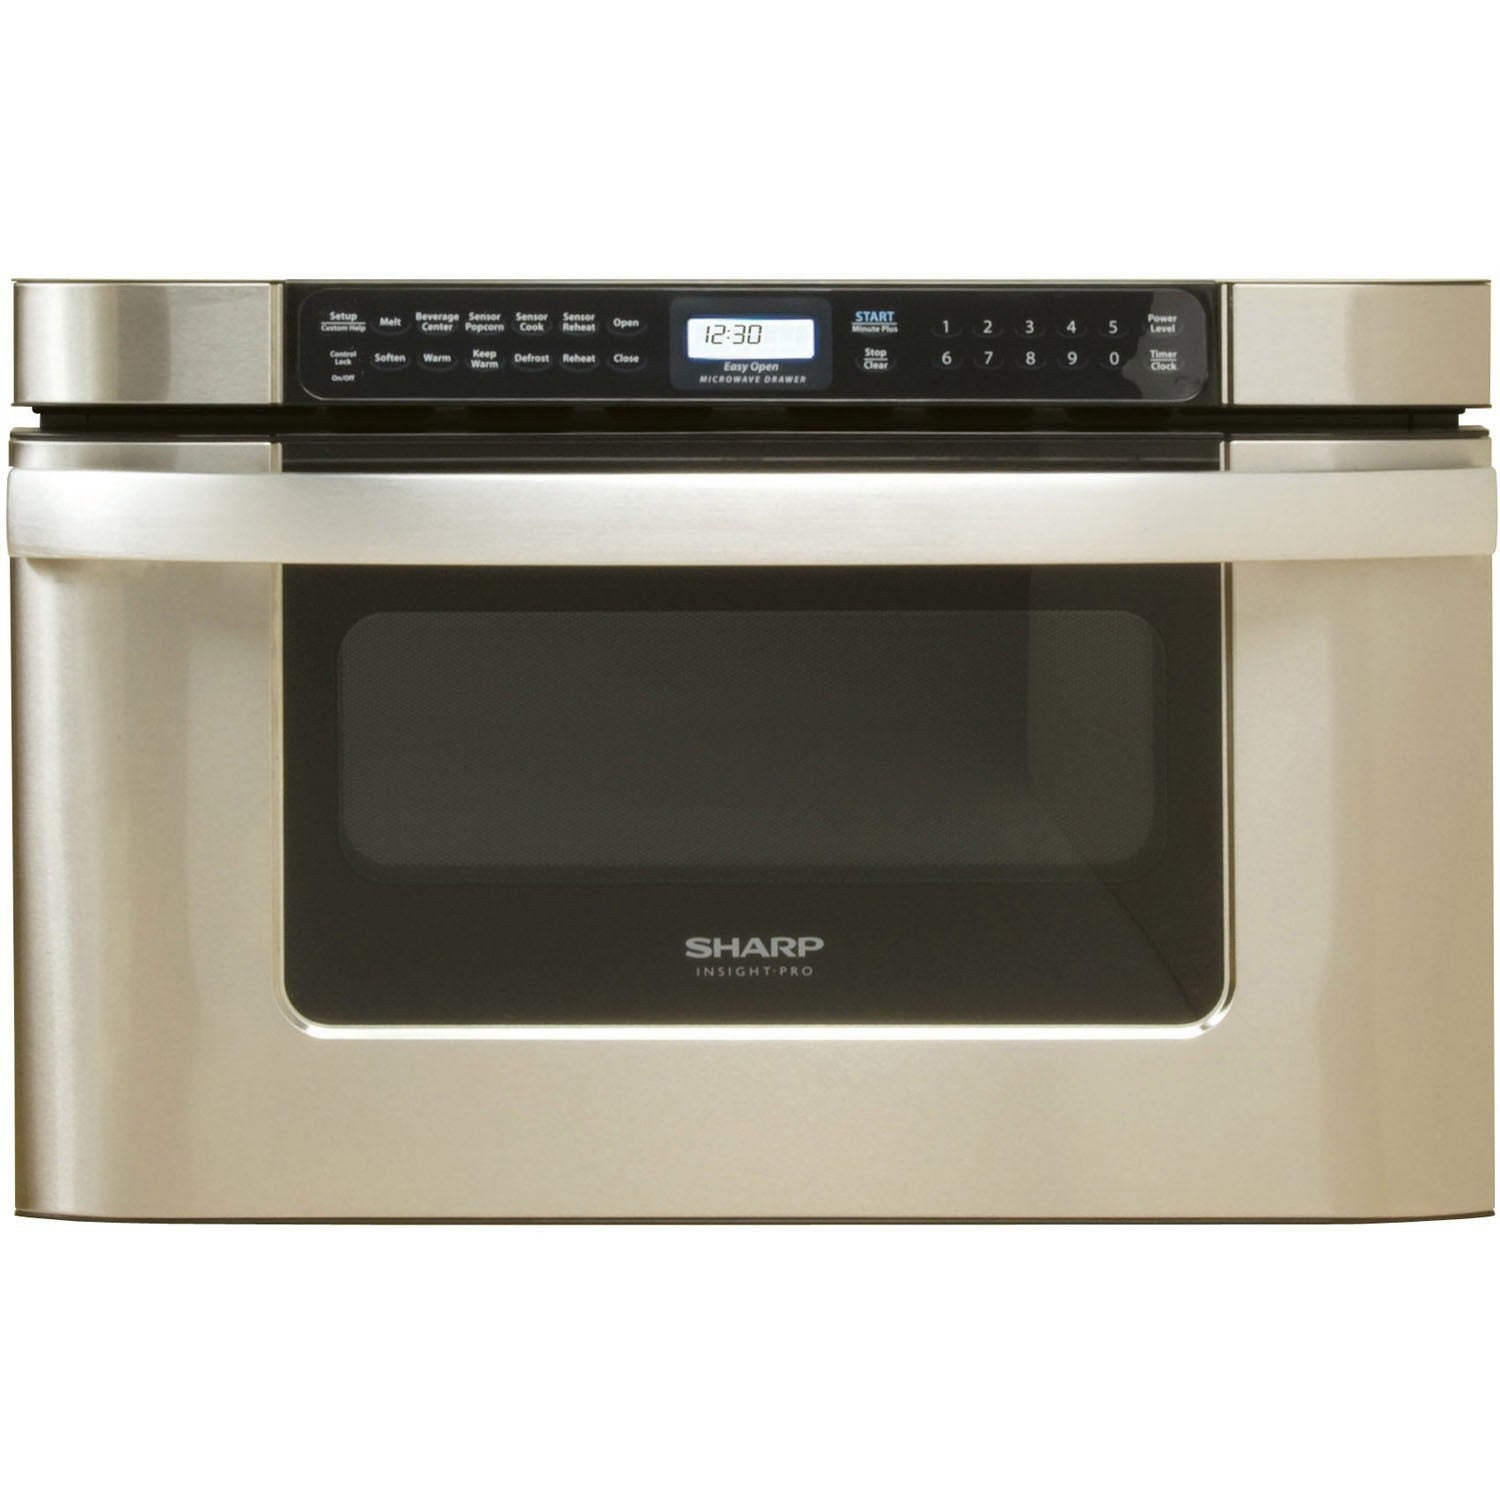 Sharp Insight Pro Series Built-In Microwave Drawer 24 inc...